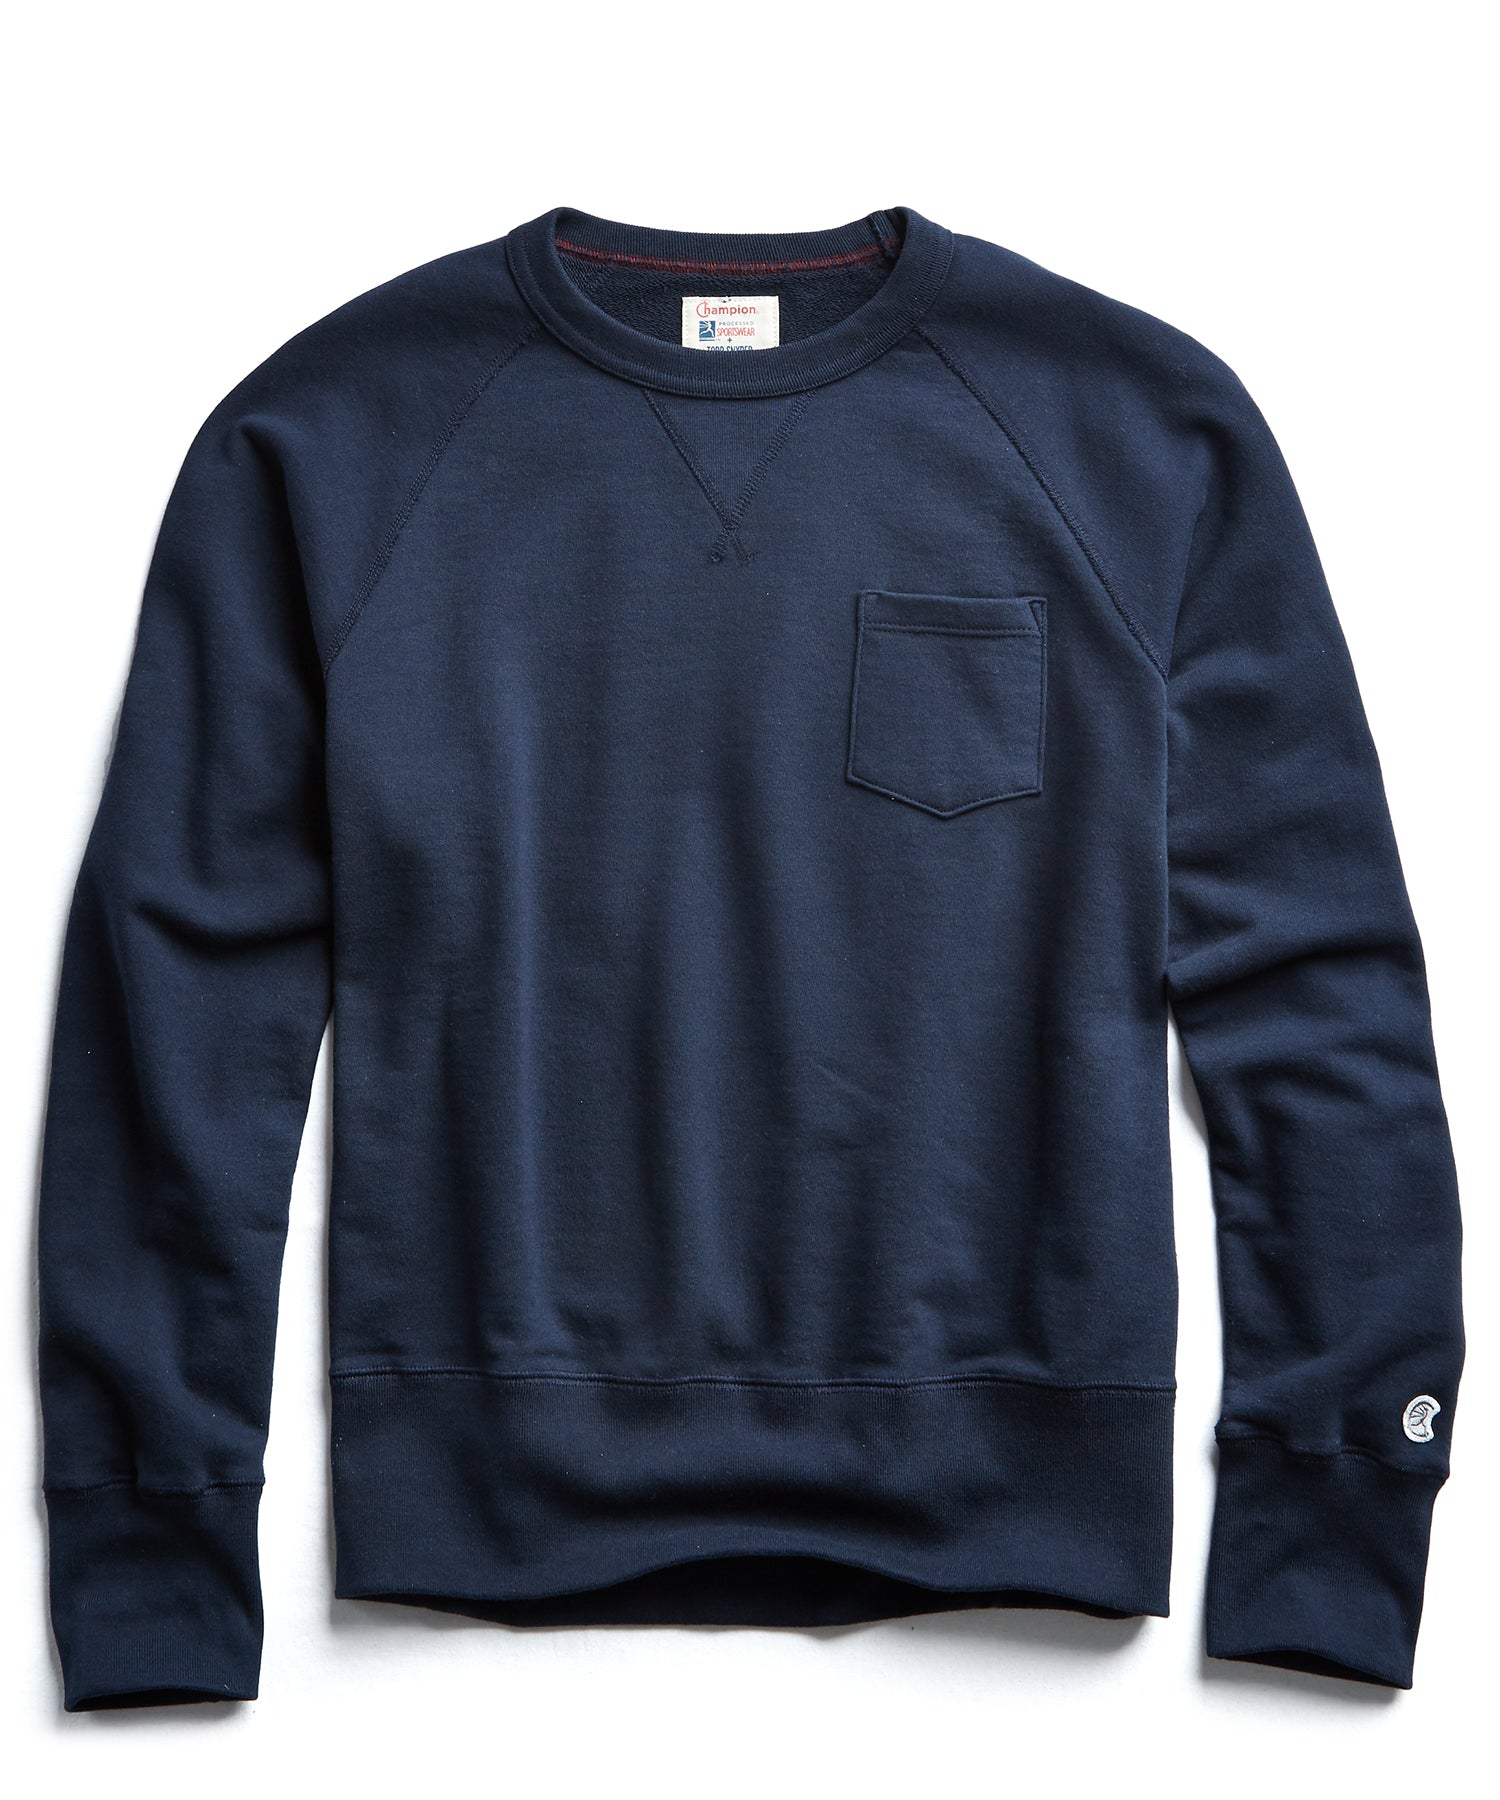 Heavyweight Pocket Sweatshirt in Navy